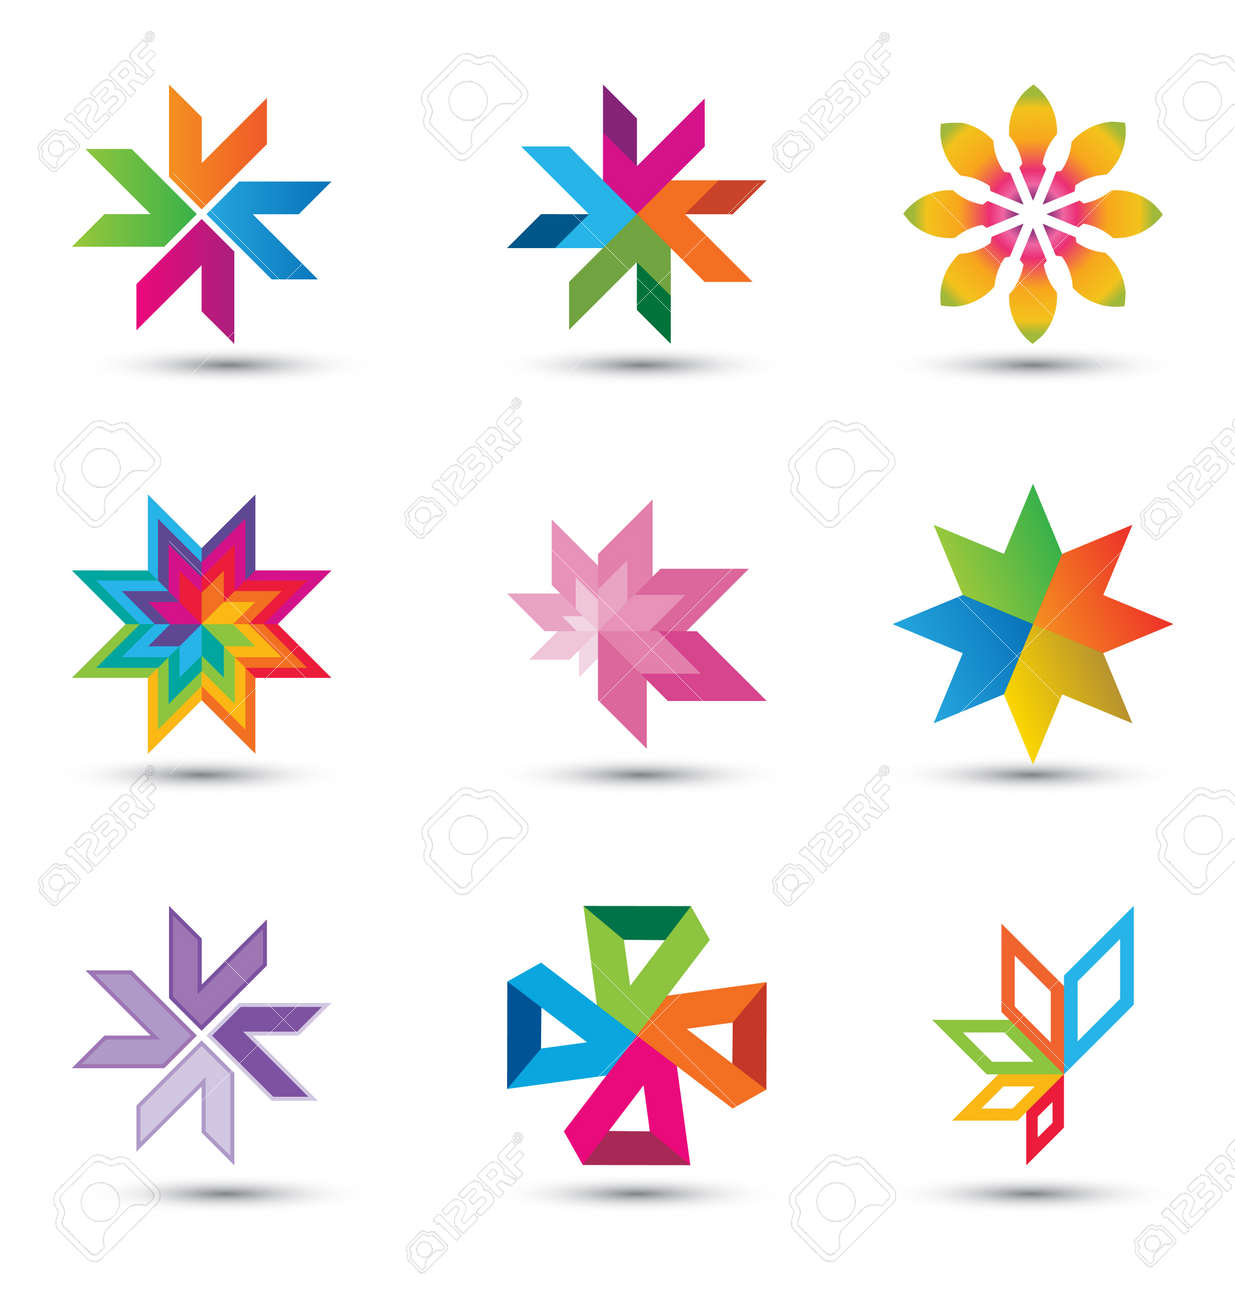 a very modern, fresh and trendy design element set for your corporate, web and print designs, fully editable. Stock Vector - 9865893